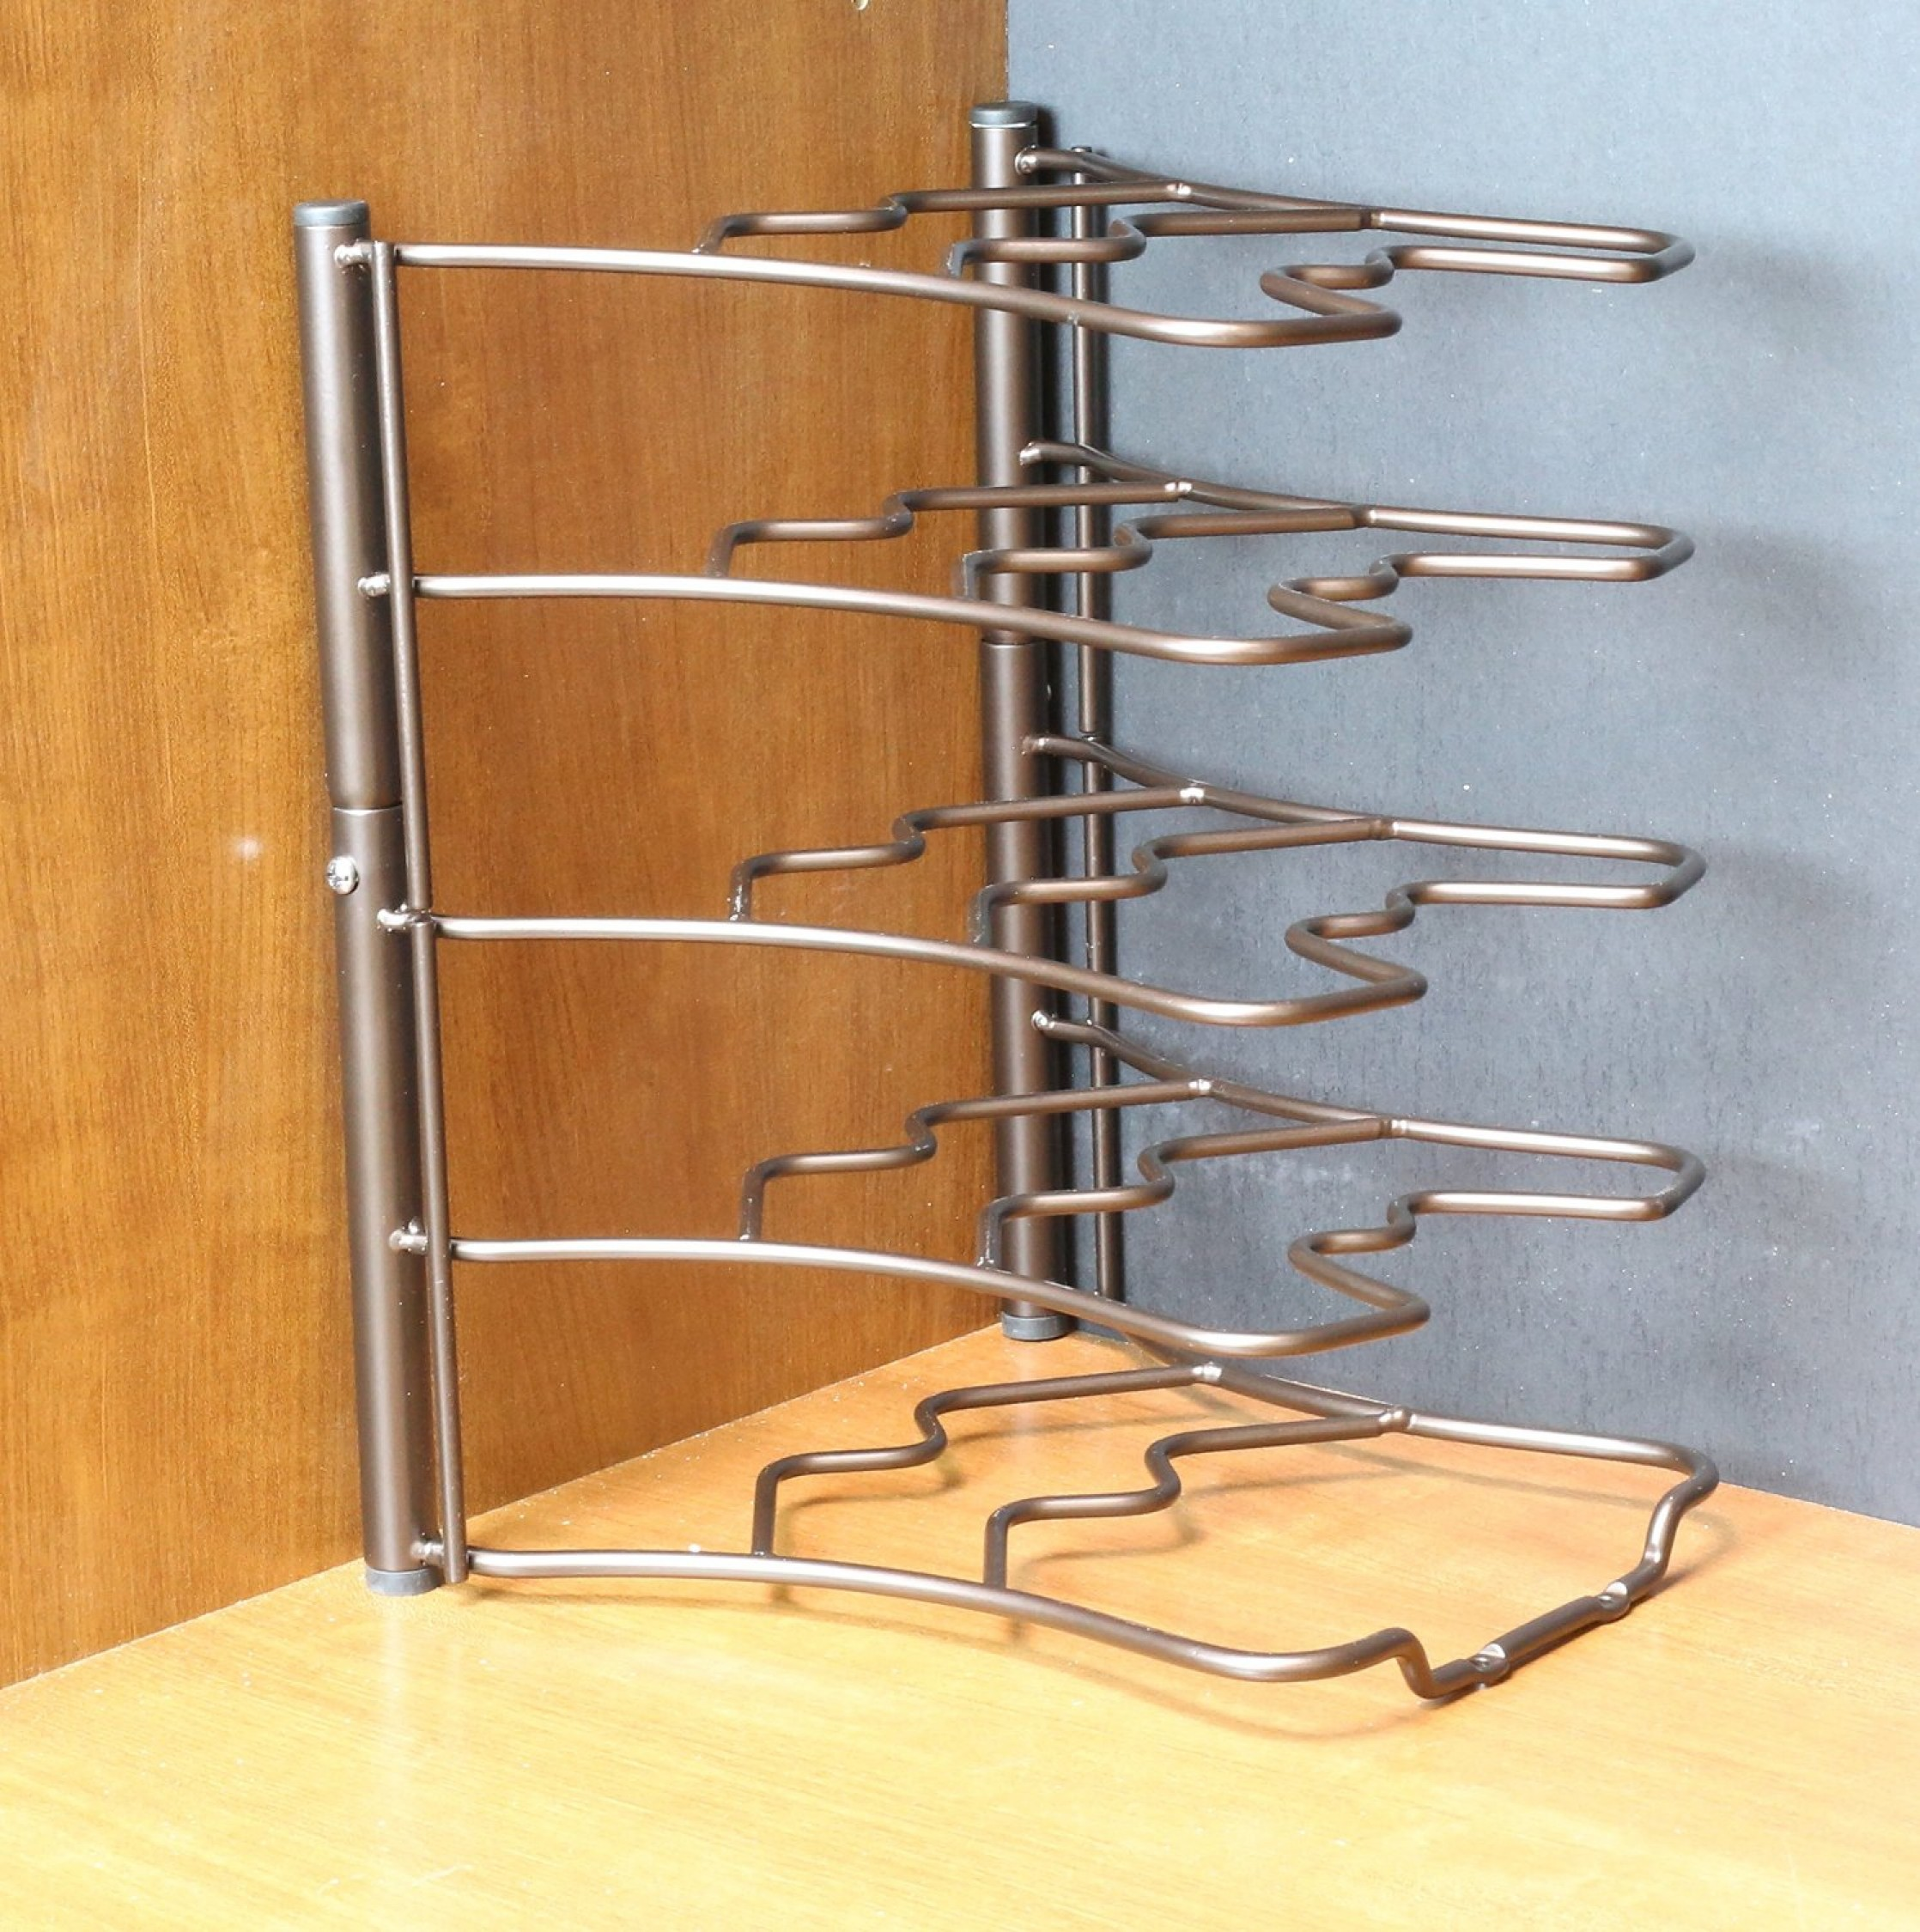 Counter & Cabinet Pan Organizer Shelf Rack Kitchen